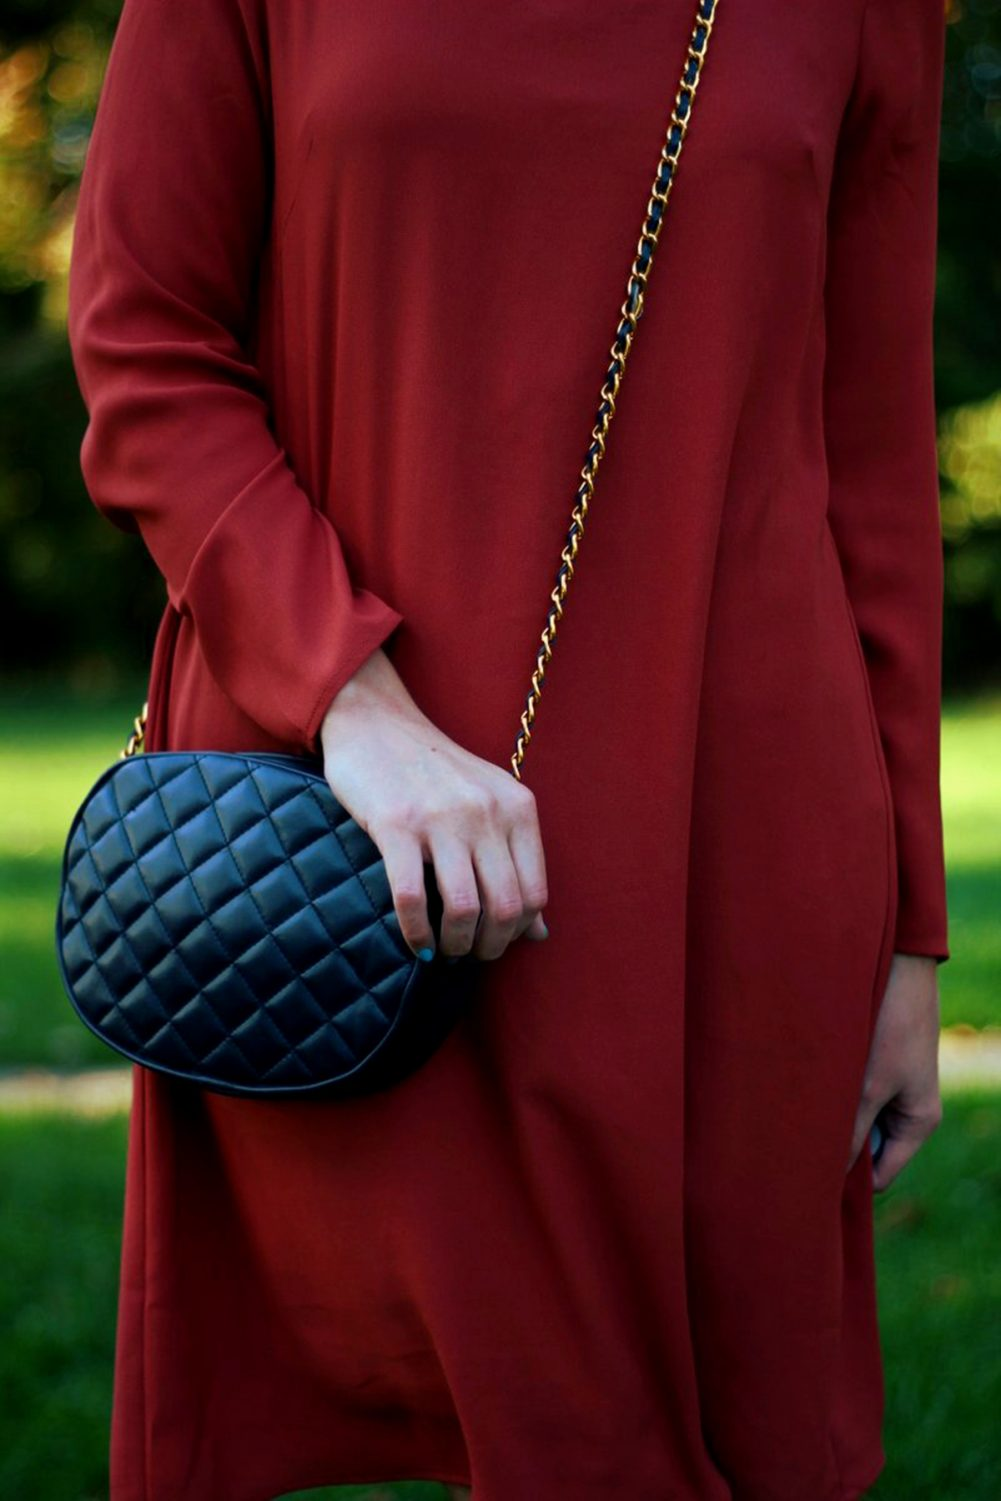 Outfit details: Orange retro style dress and navy purse